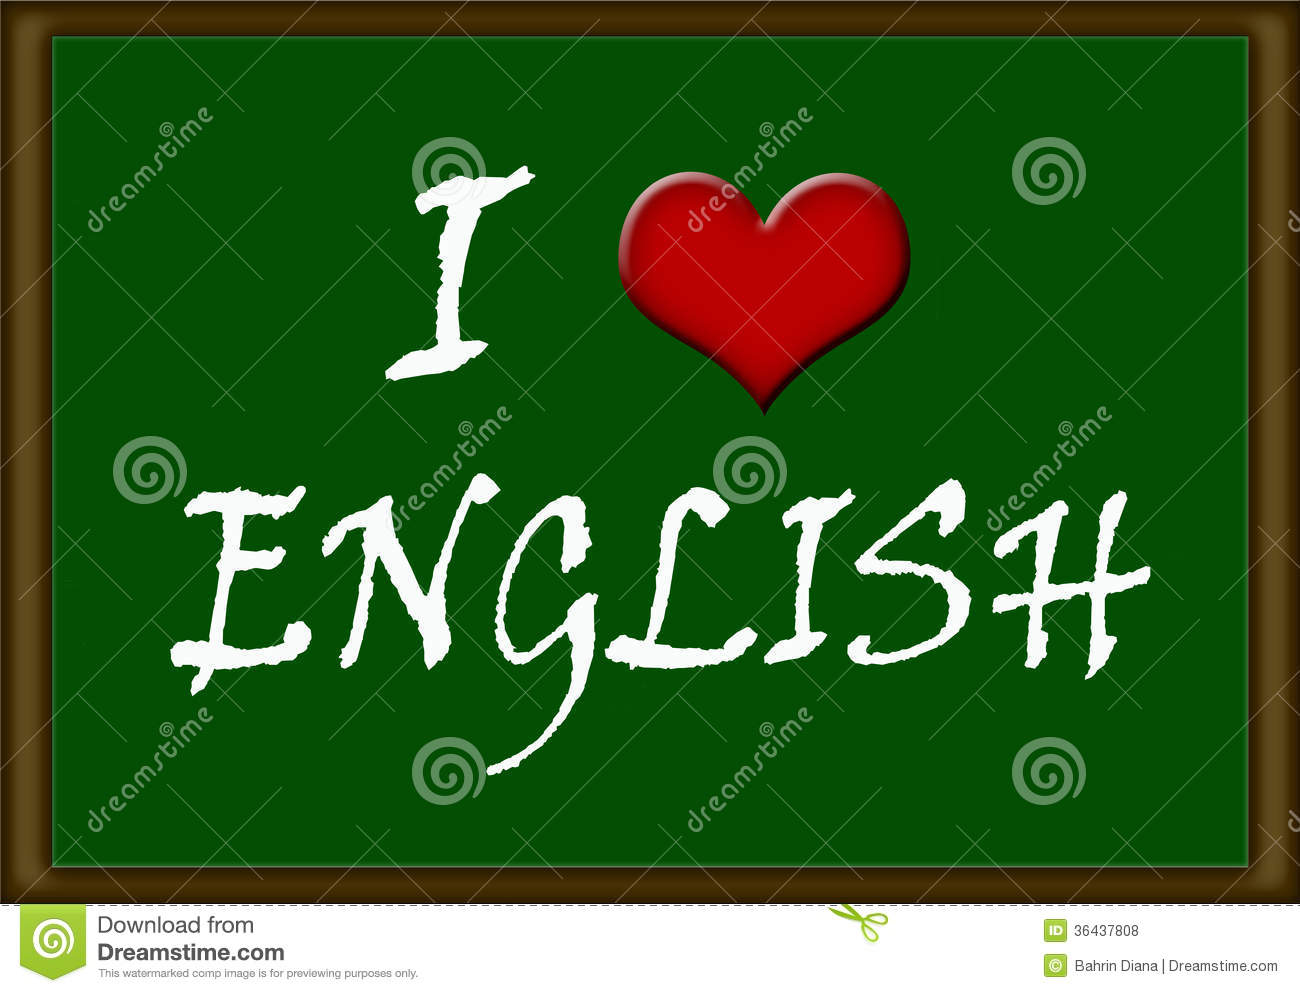 Love English Royalty Free Stock Photos - Image: 36437808